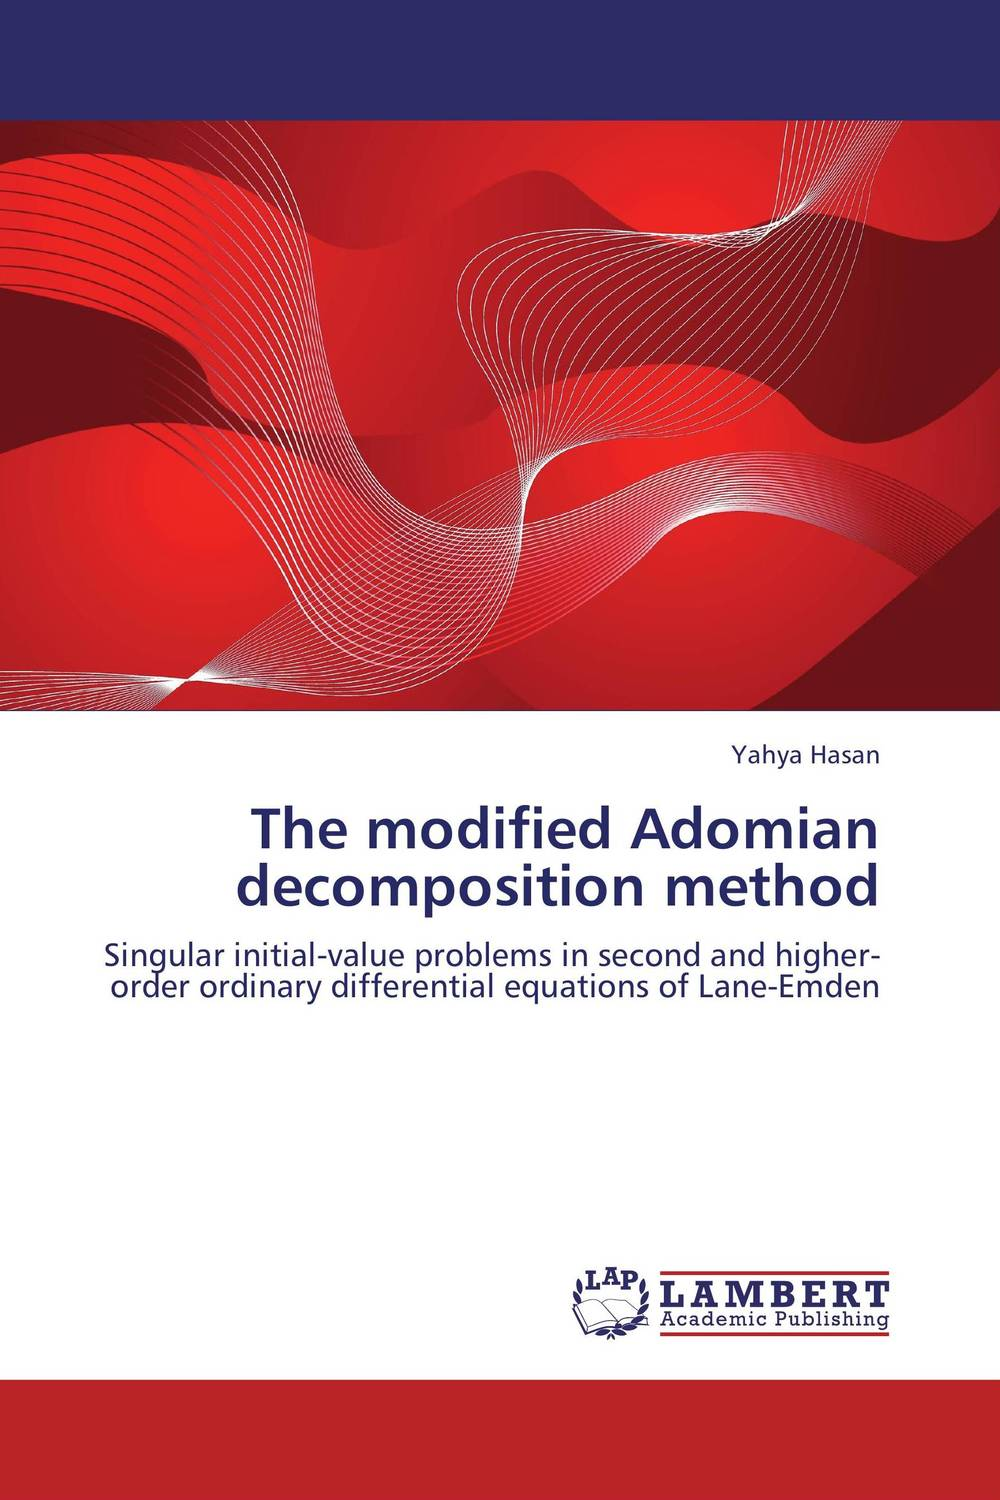 The modified Adomian decomposition method on initial value problems and its applications